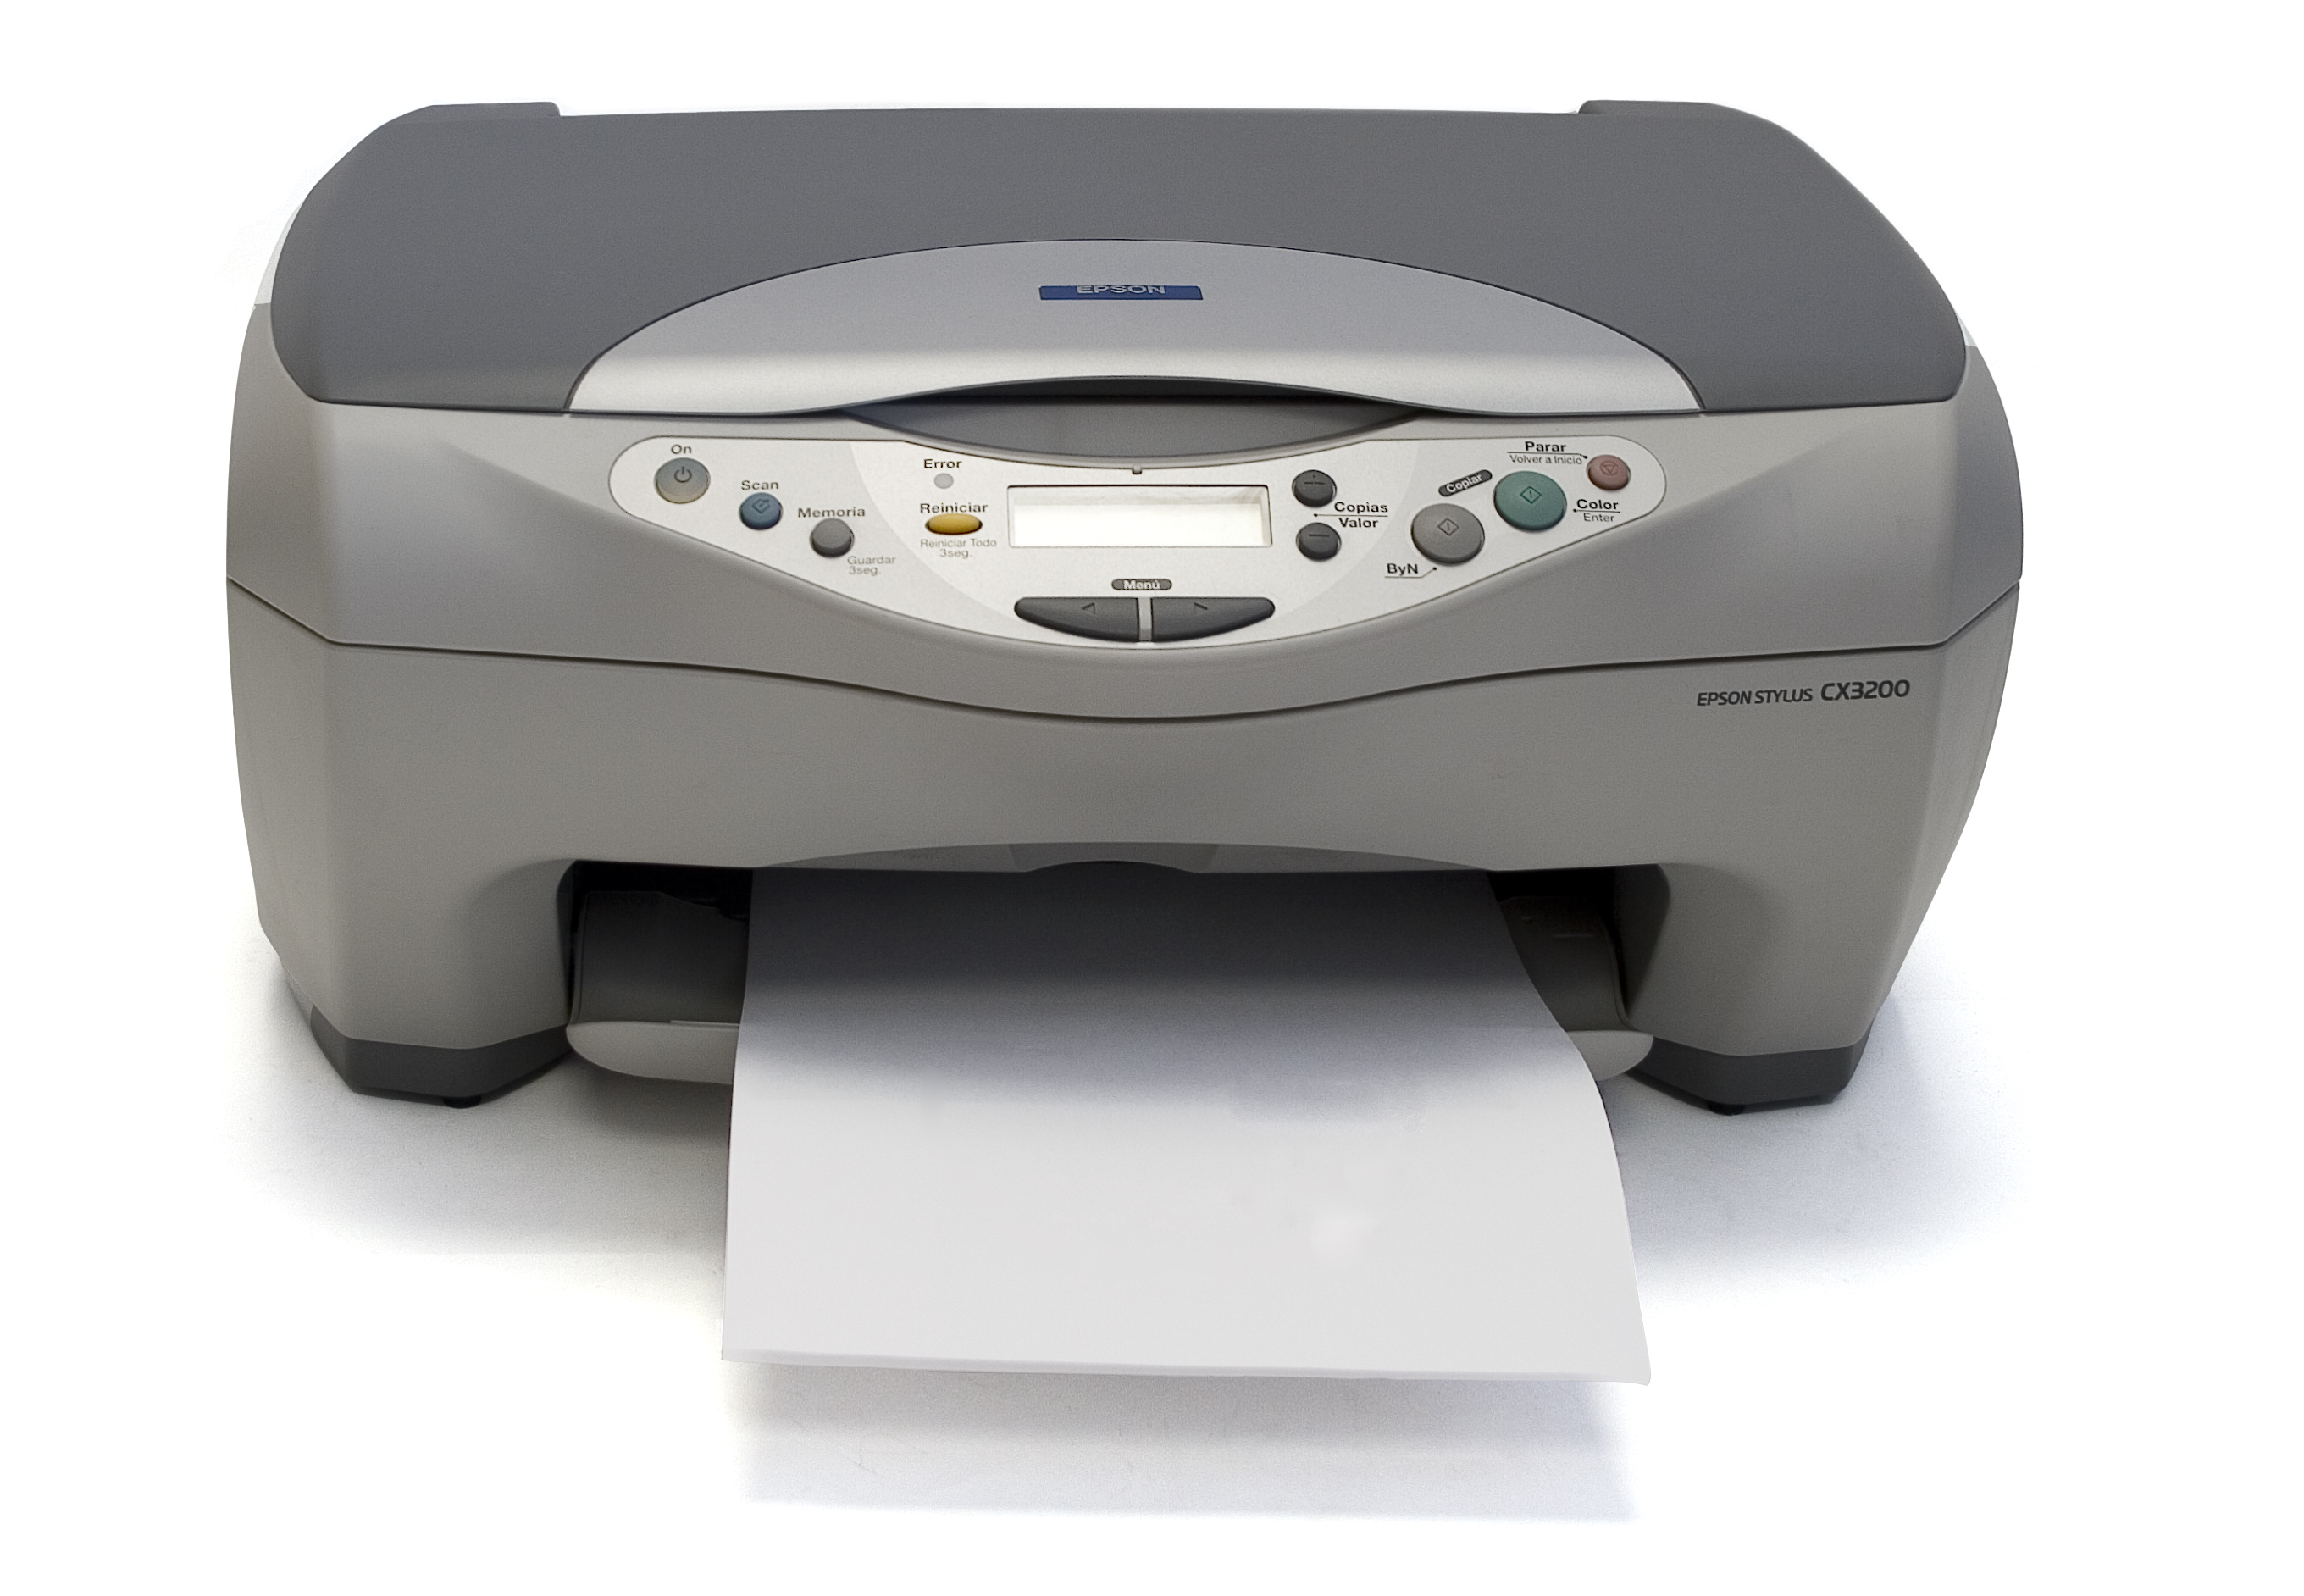 Scanner And Printer For Home Use Walmart